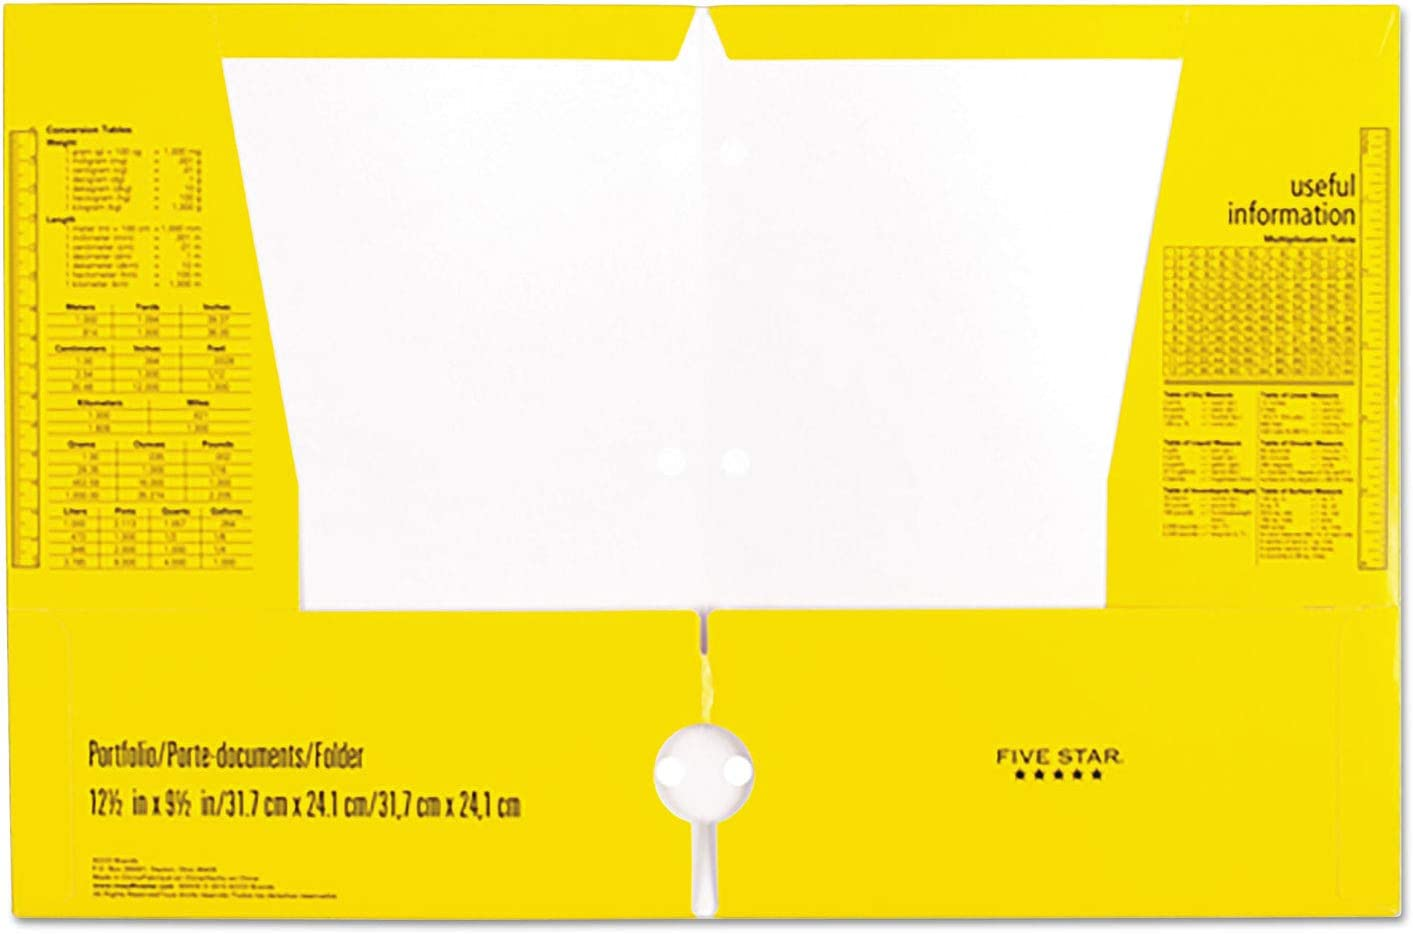 Five Star 4 Pocket Folders, 2 Pocket Folders plus 2 additional Pockets, Assorted Colors, 6 Pack (38056) : Office Products